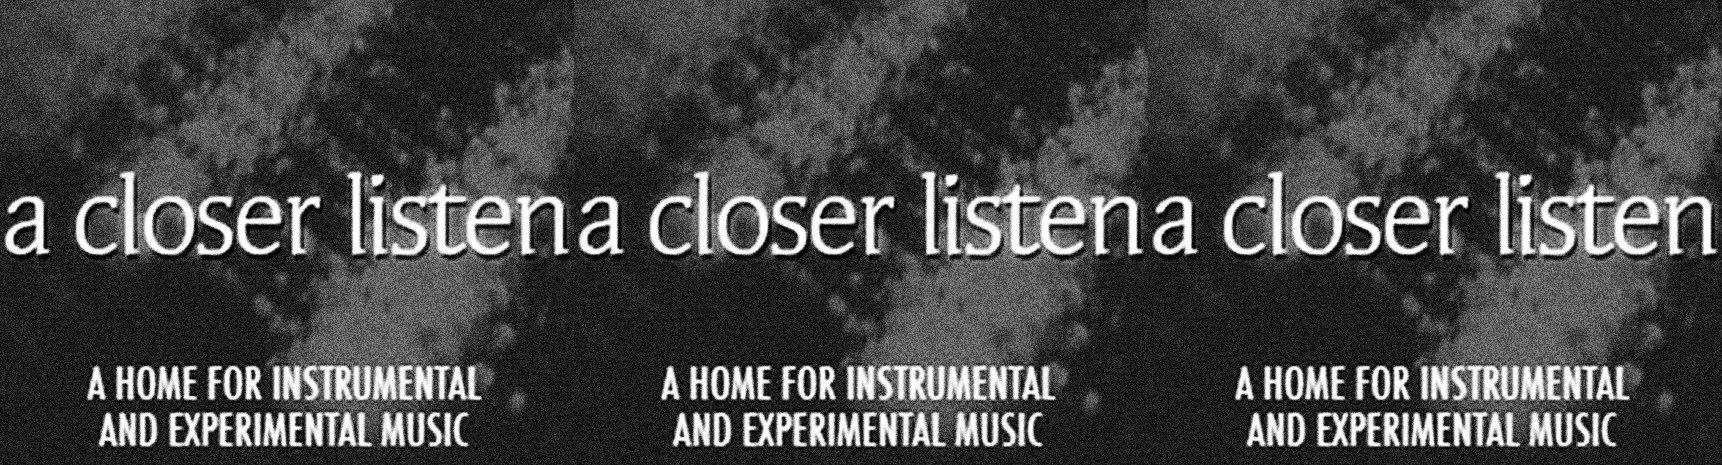 A-Closer-Listen-website-logo-3-in-a-row.jpg